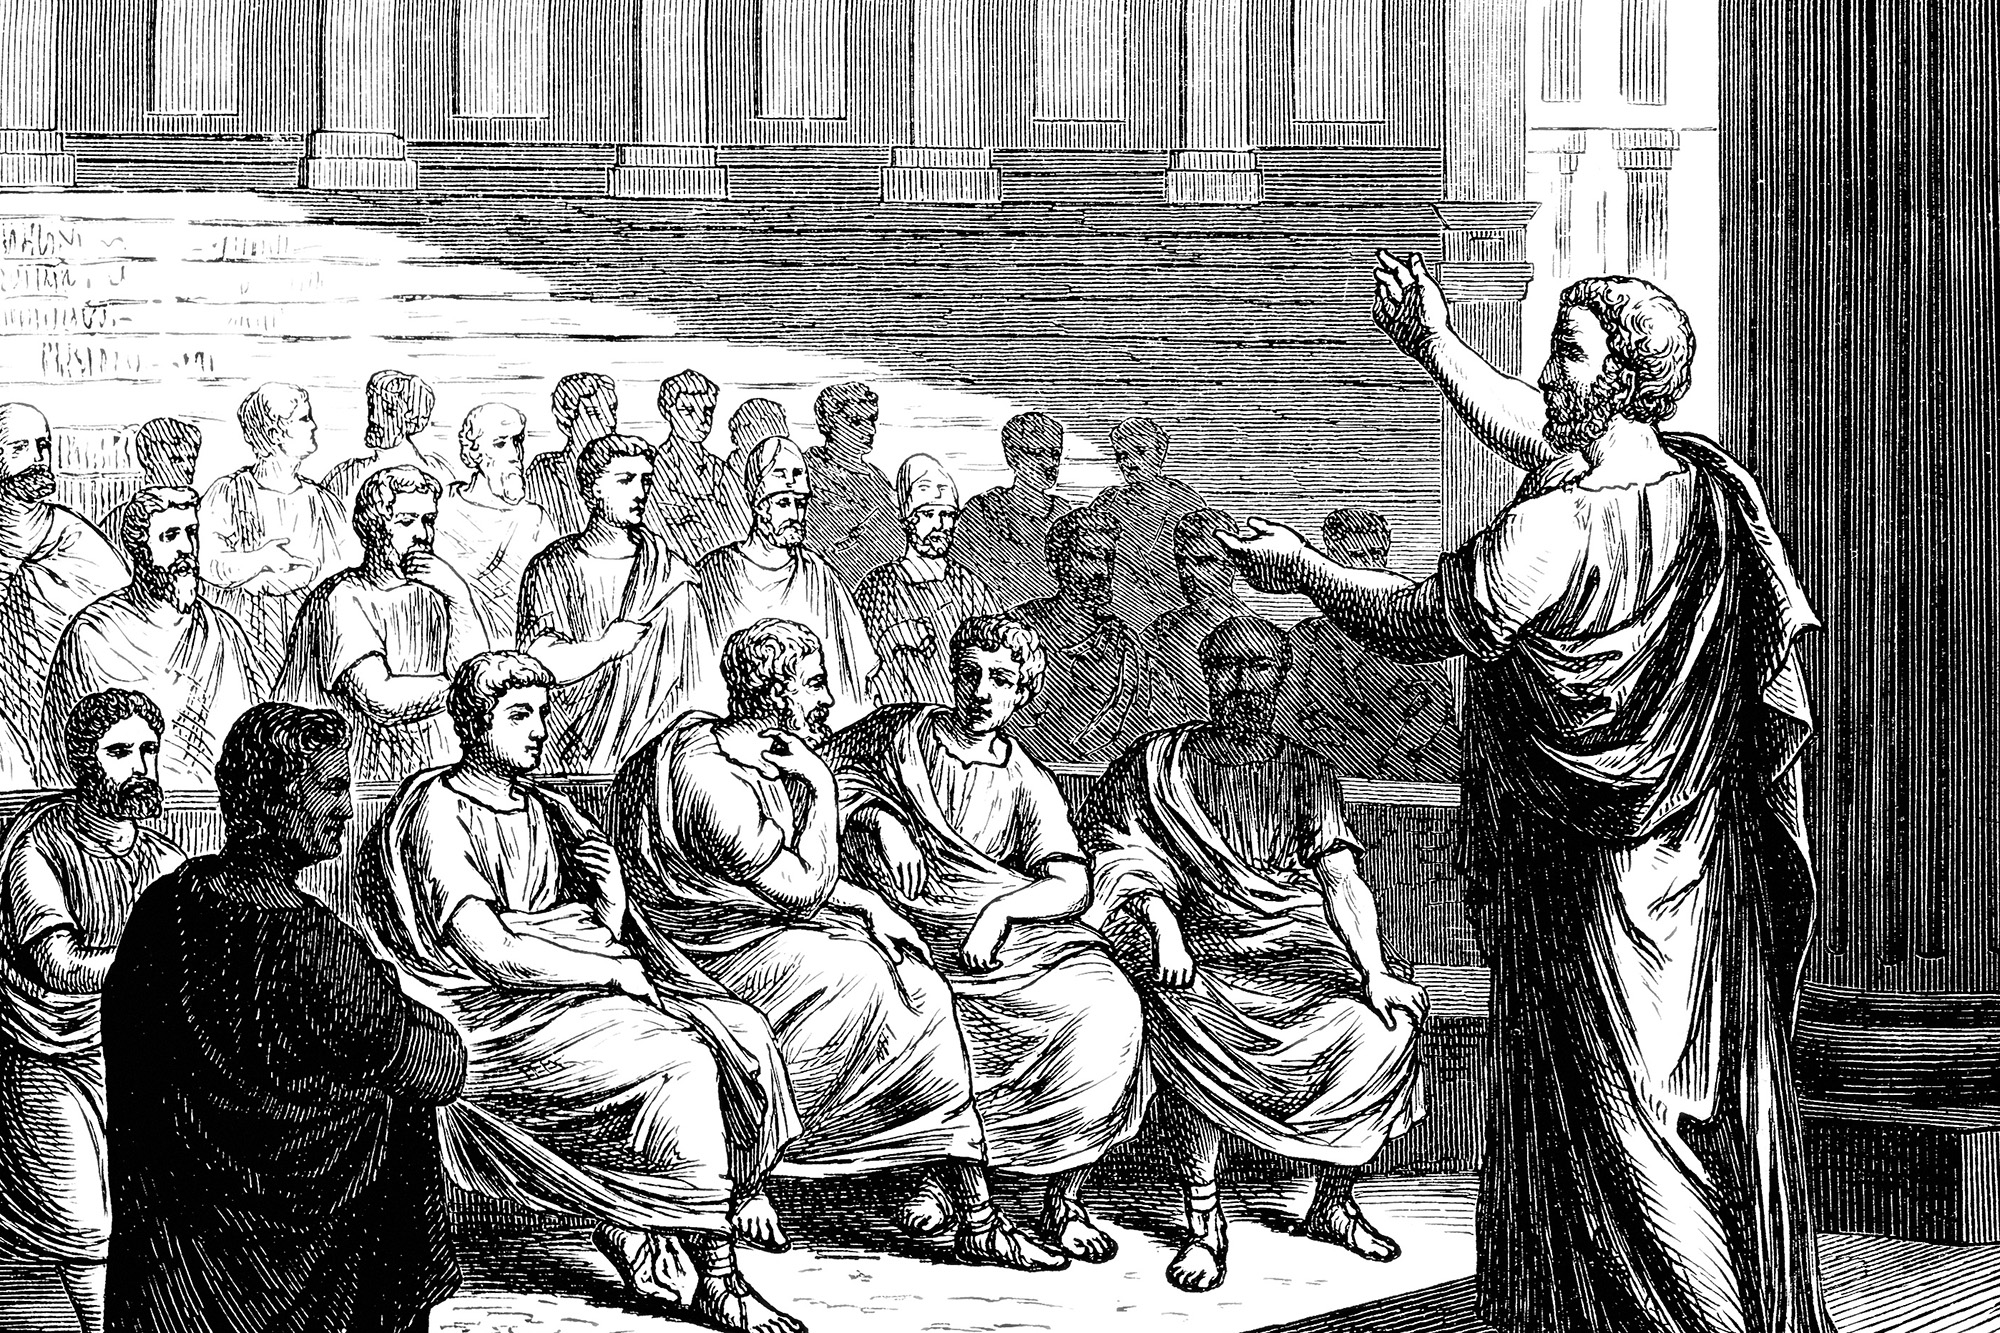 An engraving of a Greek orator addressing an audience.